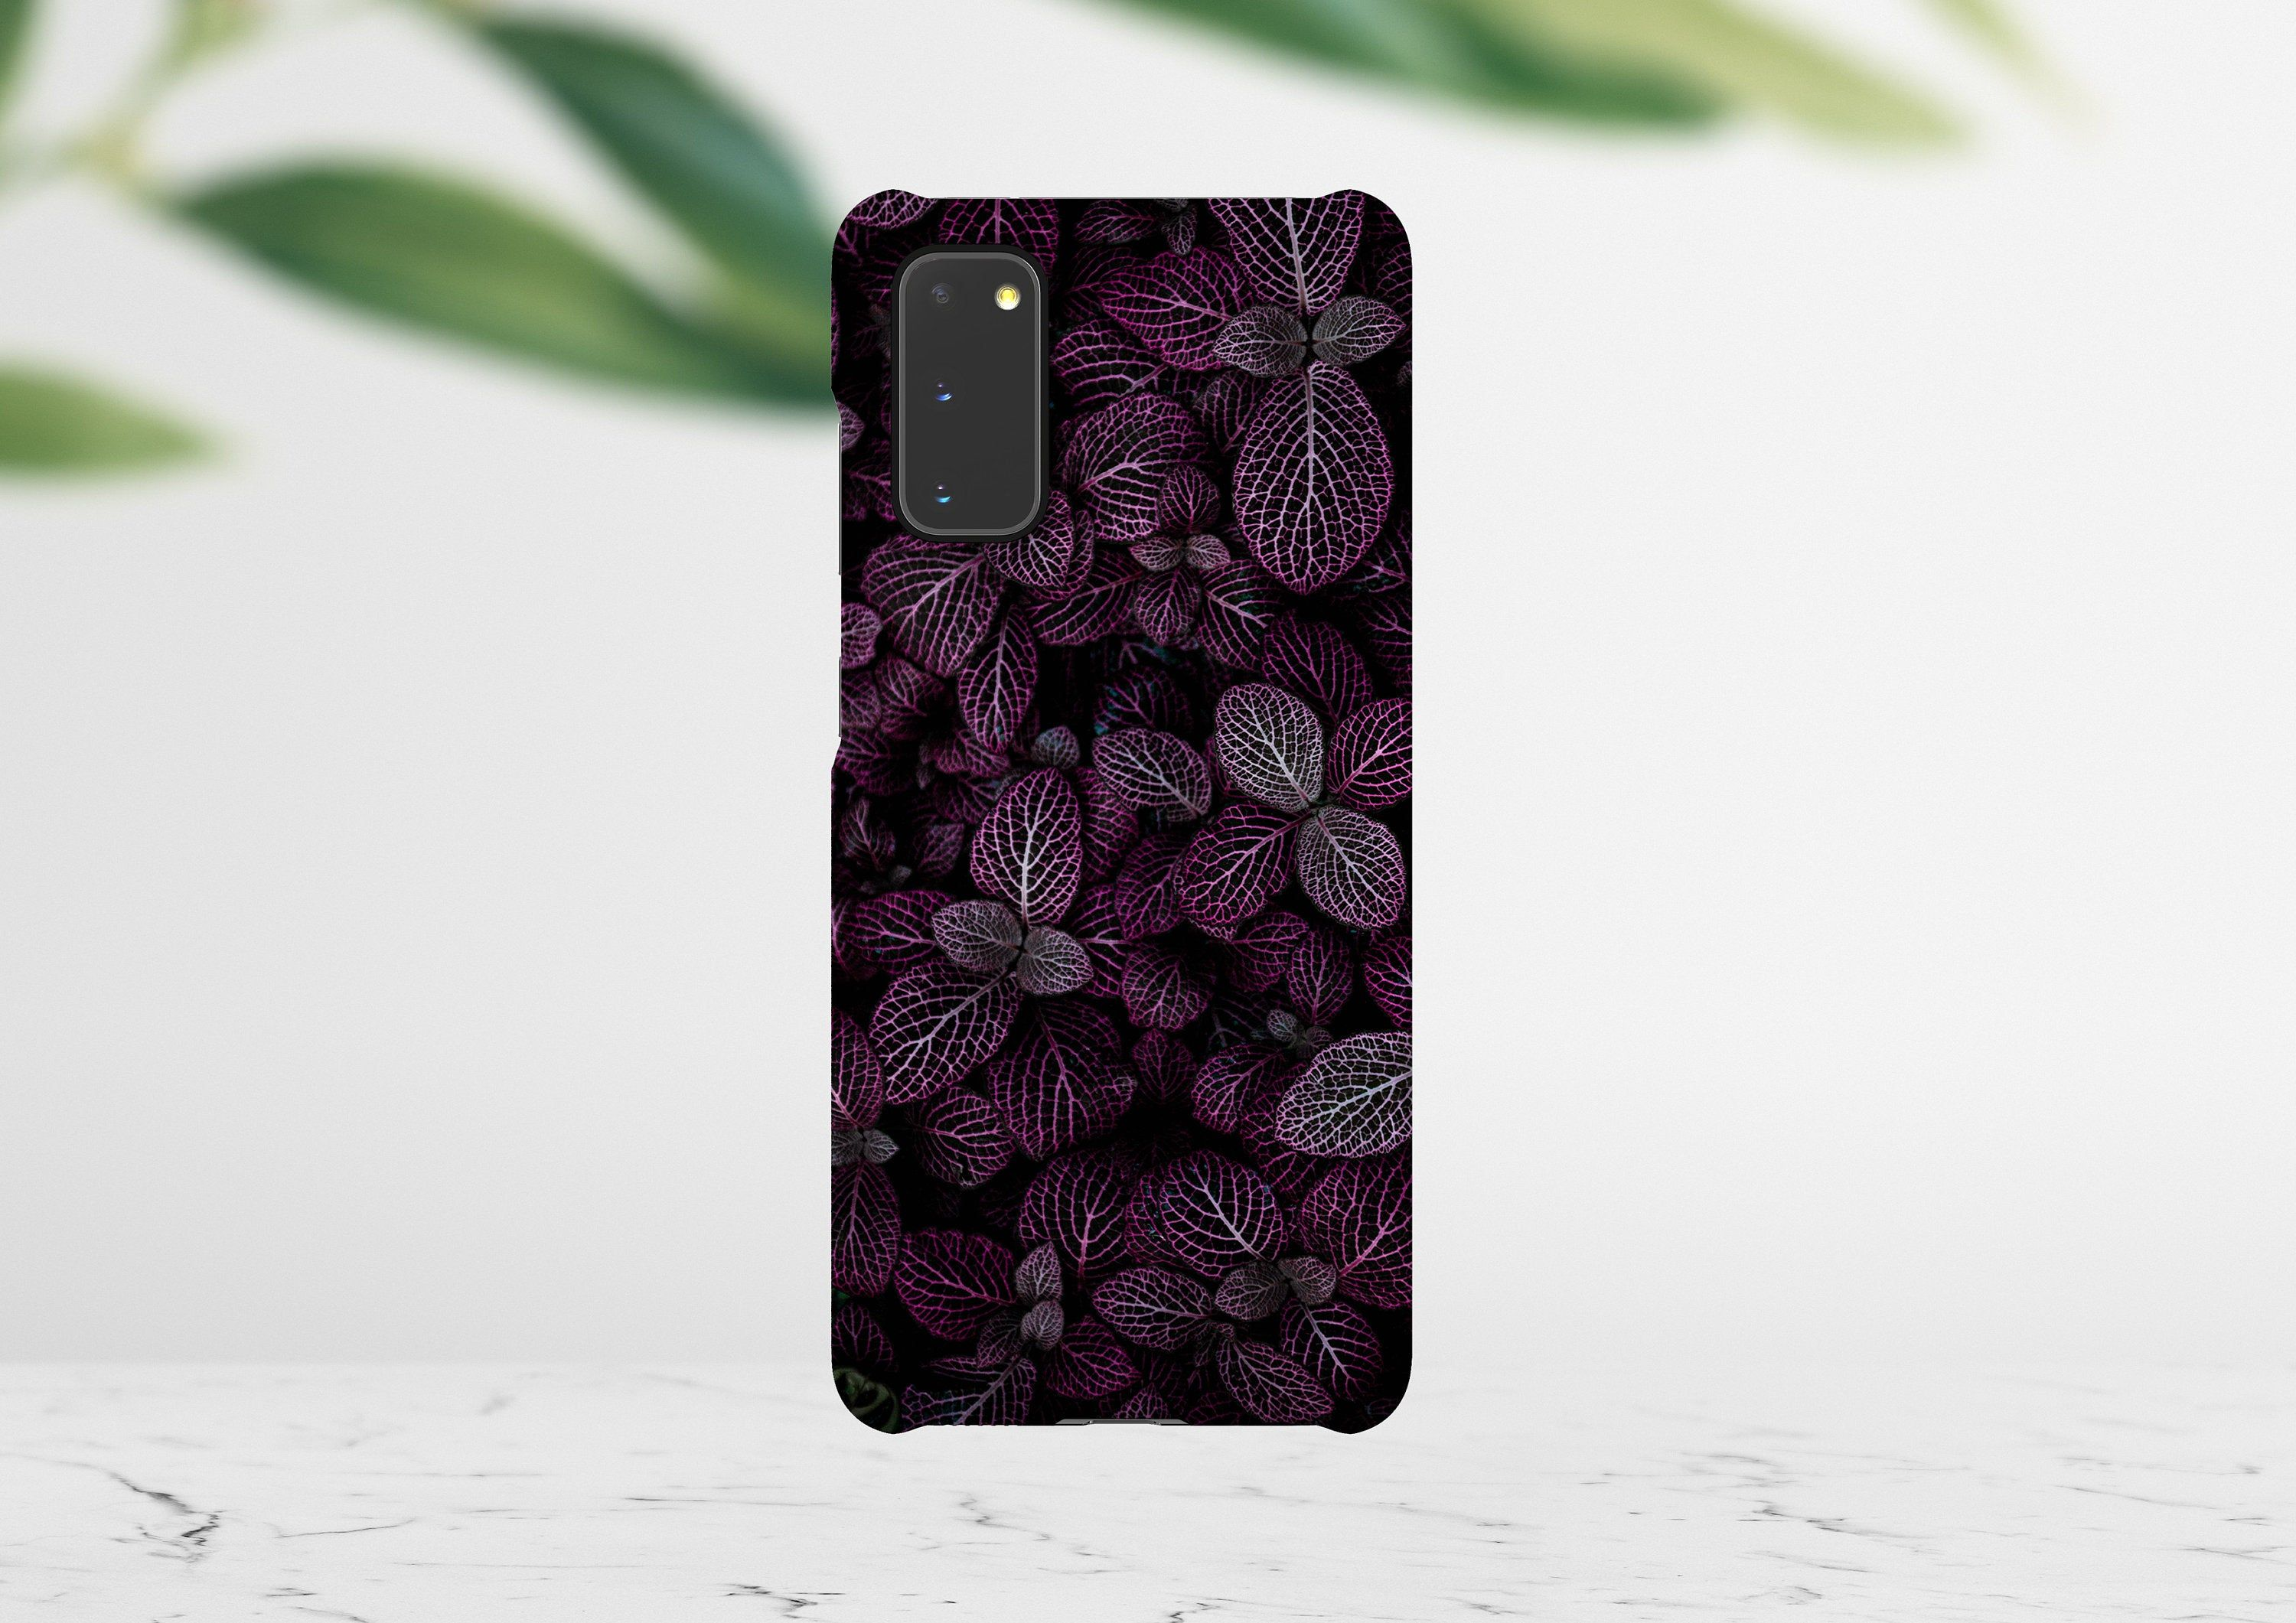 Night Flowers Galaxy S20 Case Galaxy S20 Ultra Case Galaxy S10e Case Galaxy S10 Plus Case Galaxy Note 9 Case Galaxy Note 10 Case #GalaxyS9PlusCase #GalaxyS9Case #GalaxyA70 #GalaxyNote8 #GalaxyNote9Case #GalaxyS10PlusCase #GalaxyS10Case #GalaxyNote10Case #GalaxyS10eCase #GalaxyNote10Plus